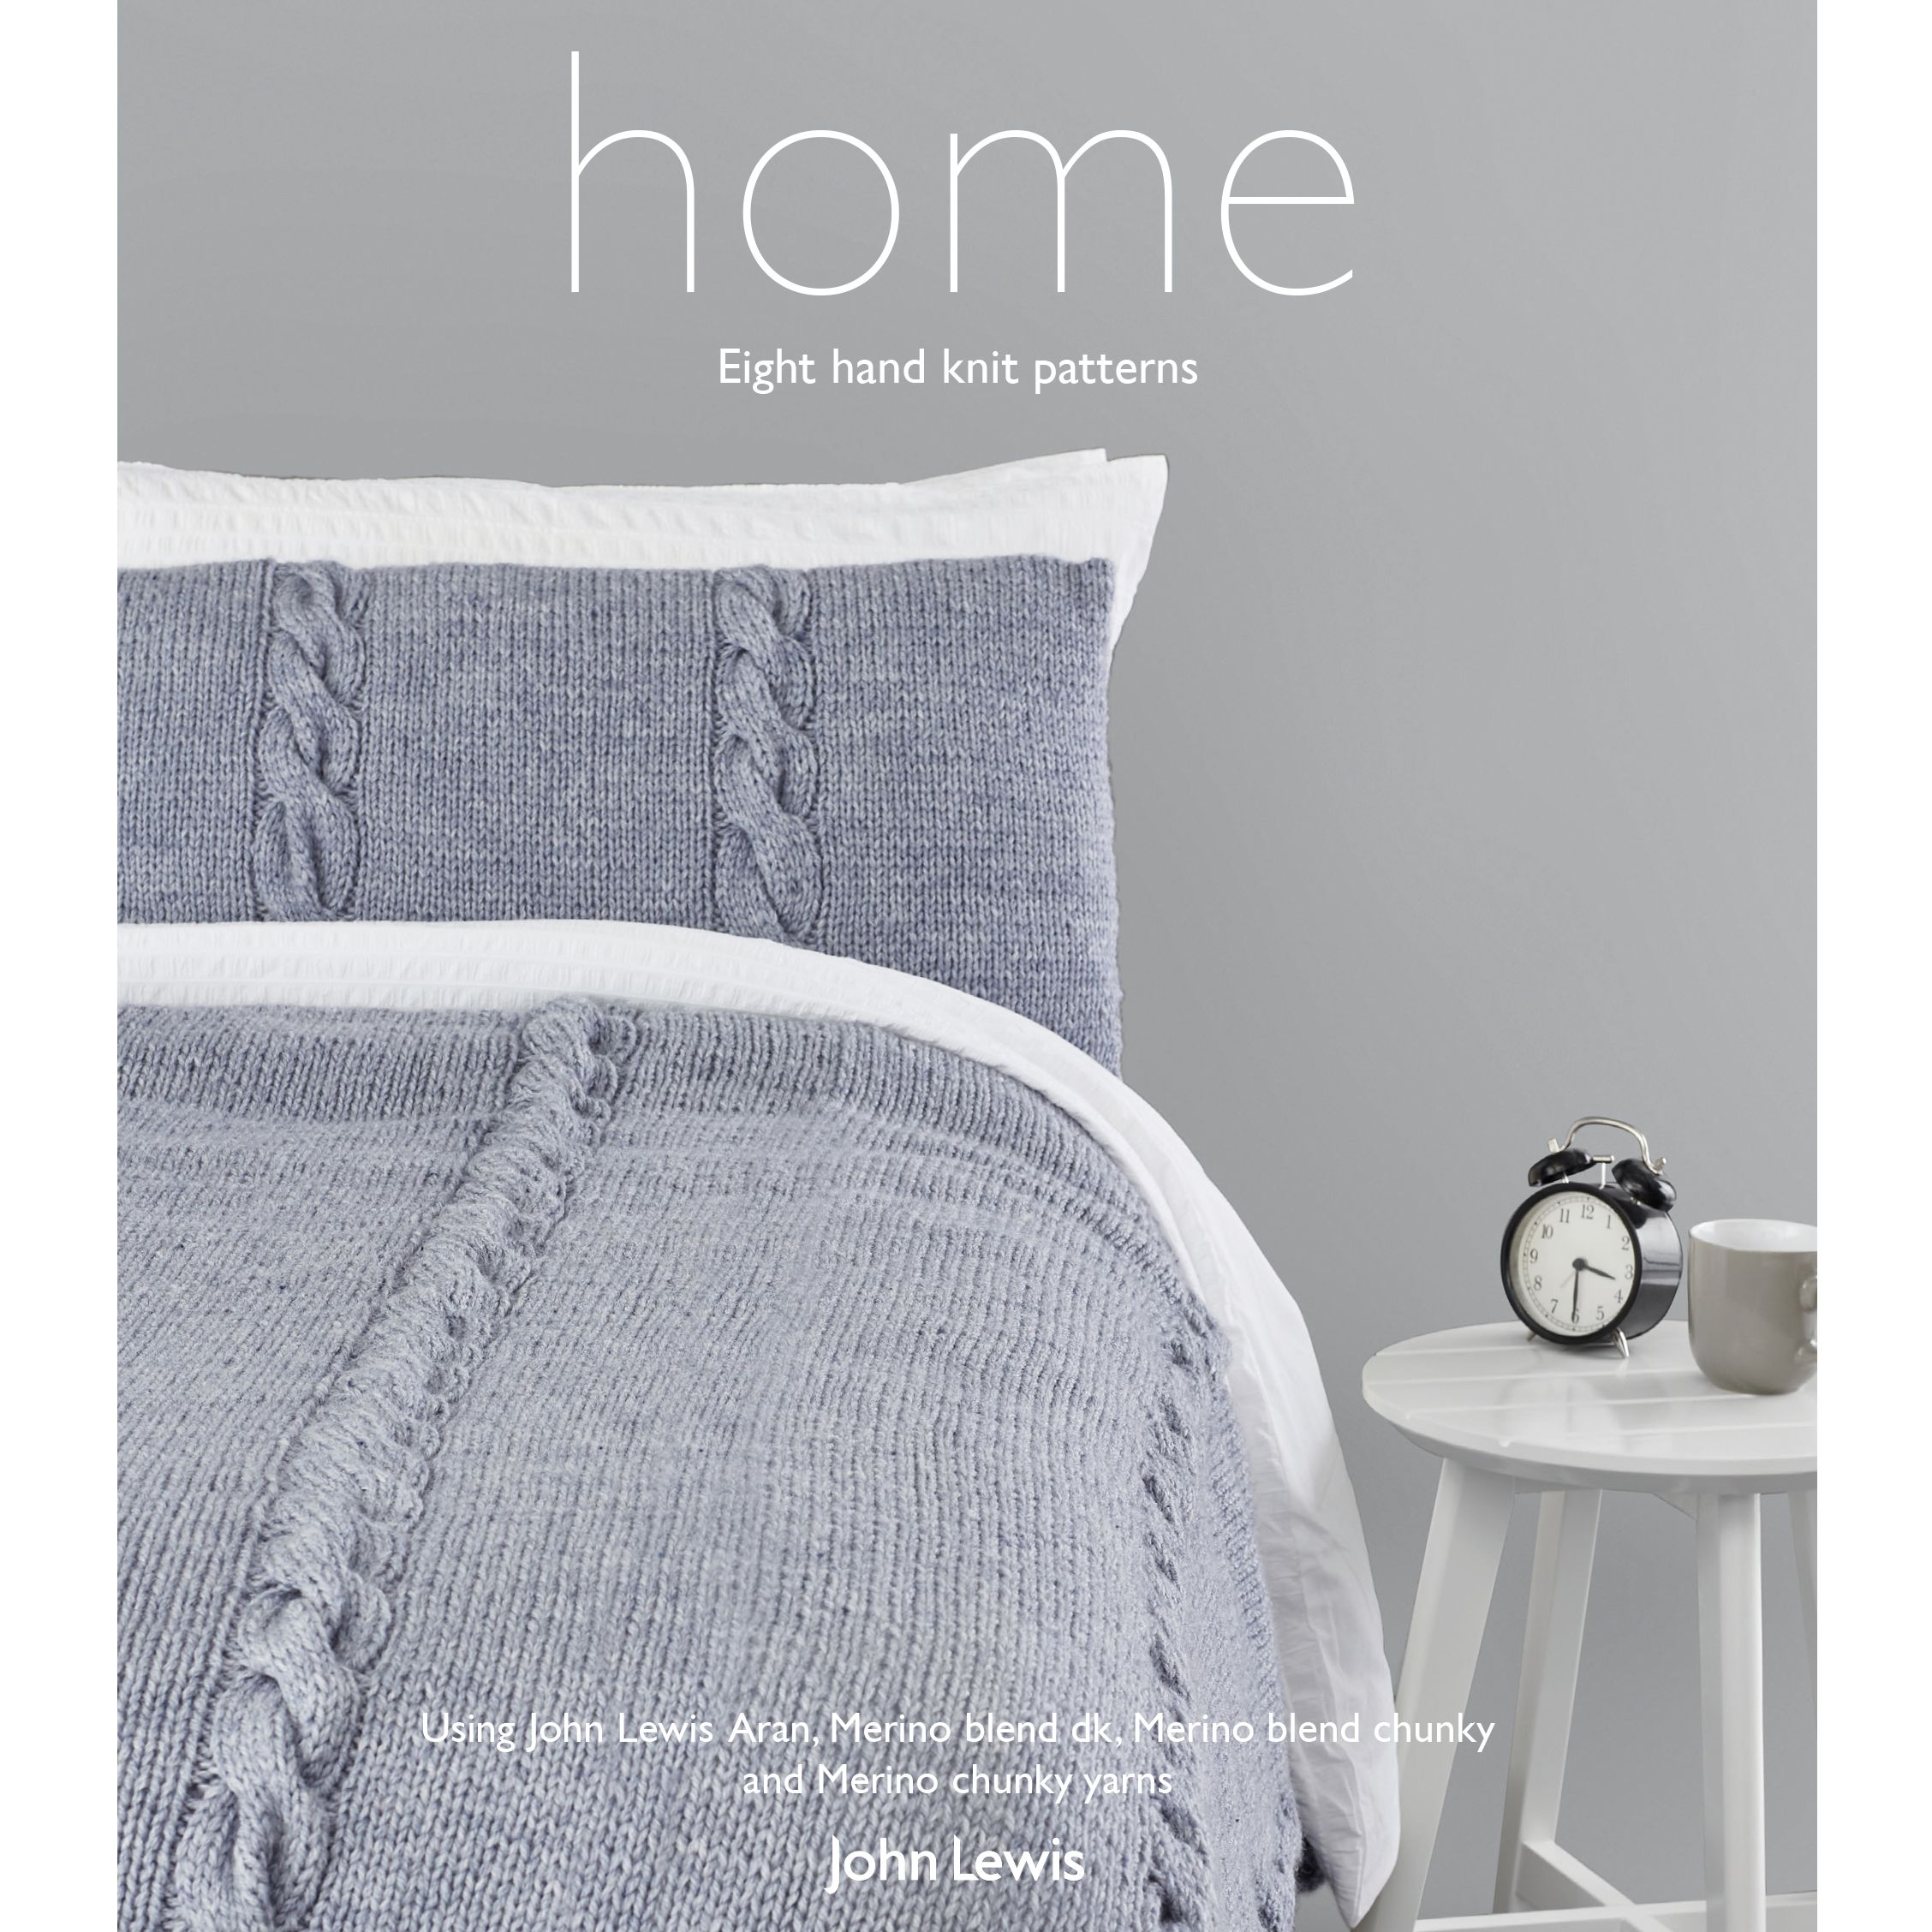 Knitting Pattern John Lewis : Buy John Lewis Home Knitting Pattern Brochure John Lewis